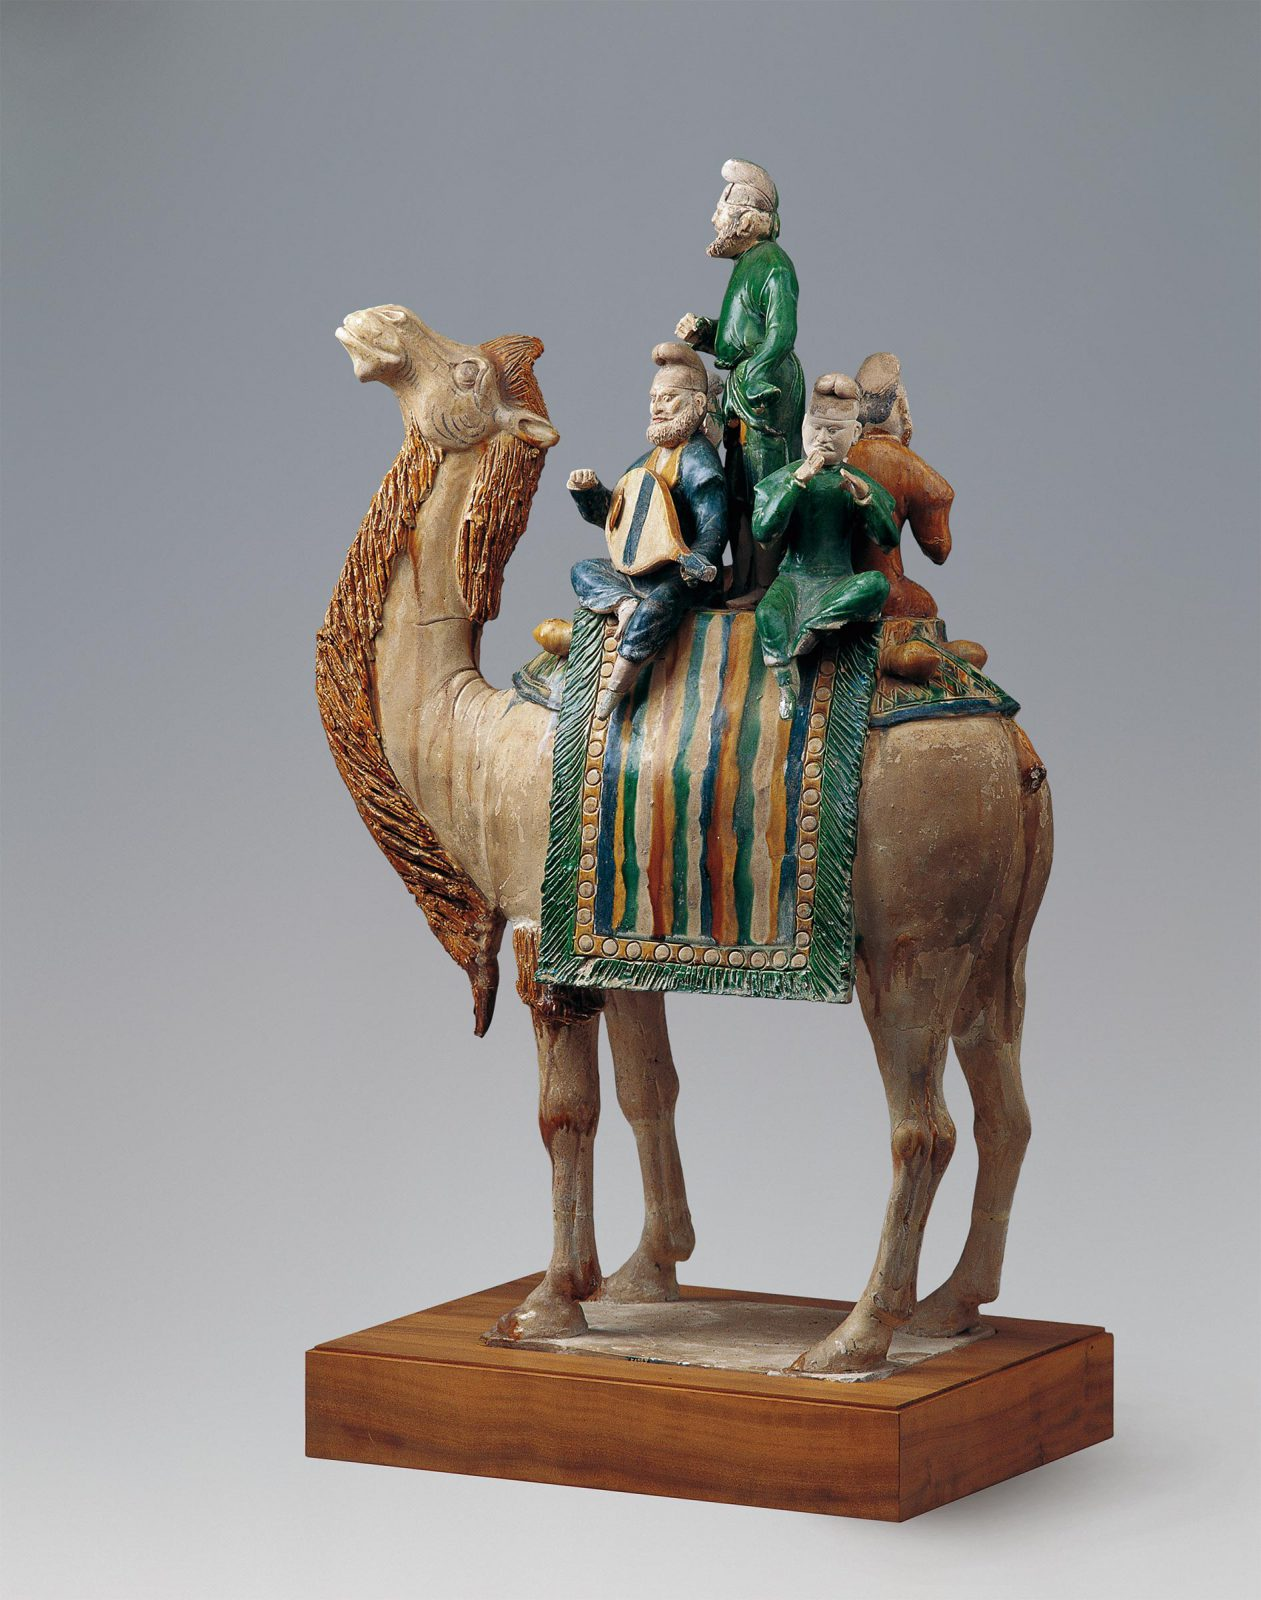 Four musicians on a camel